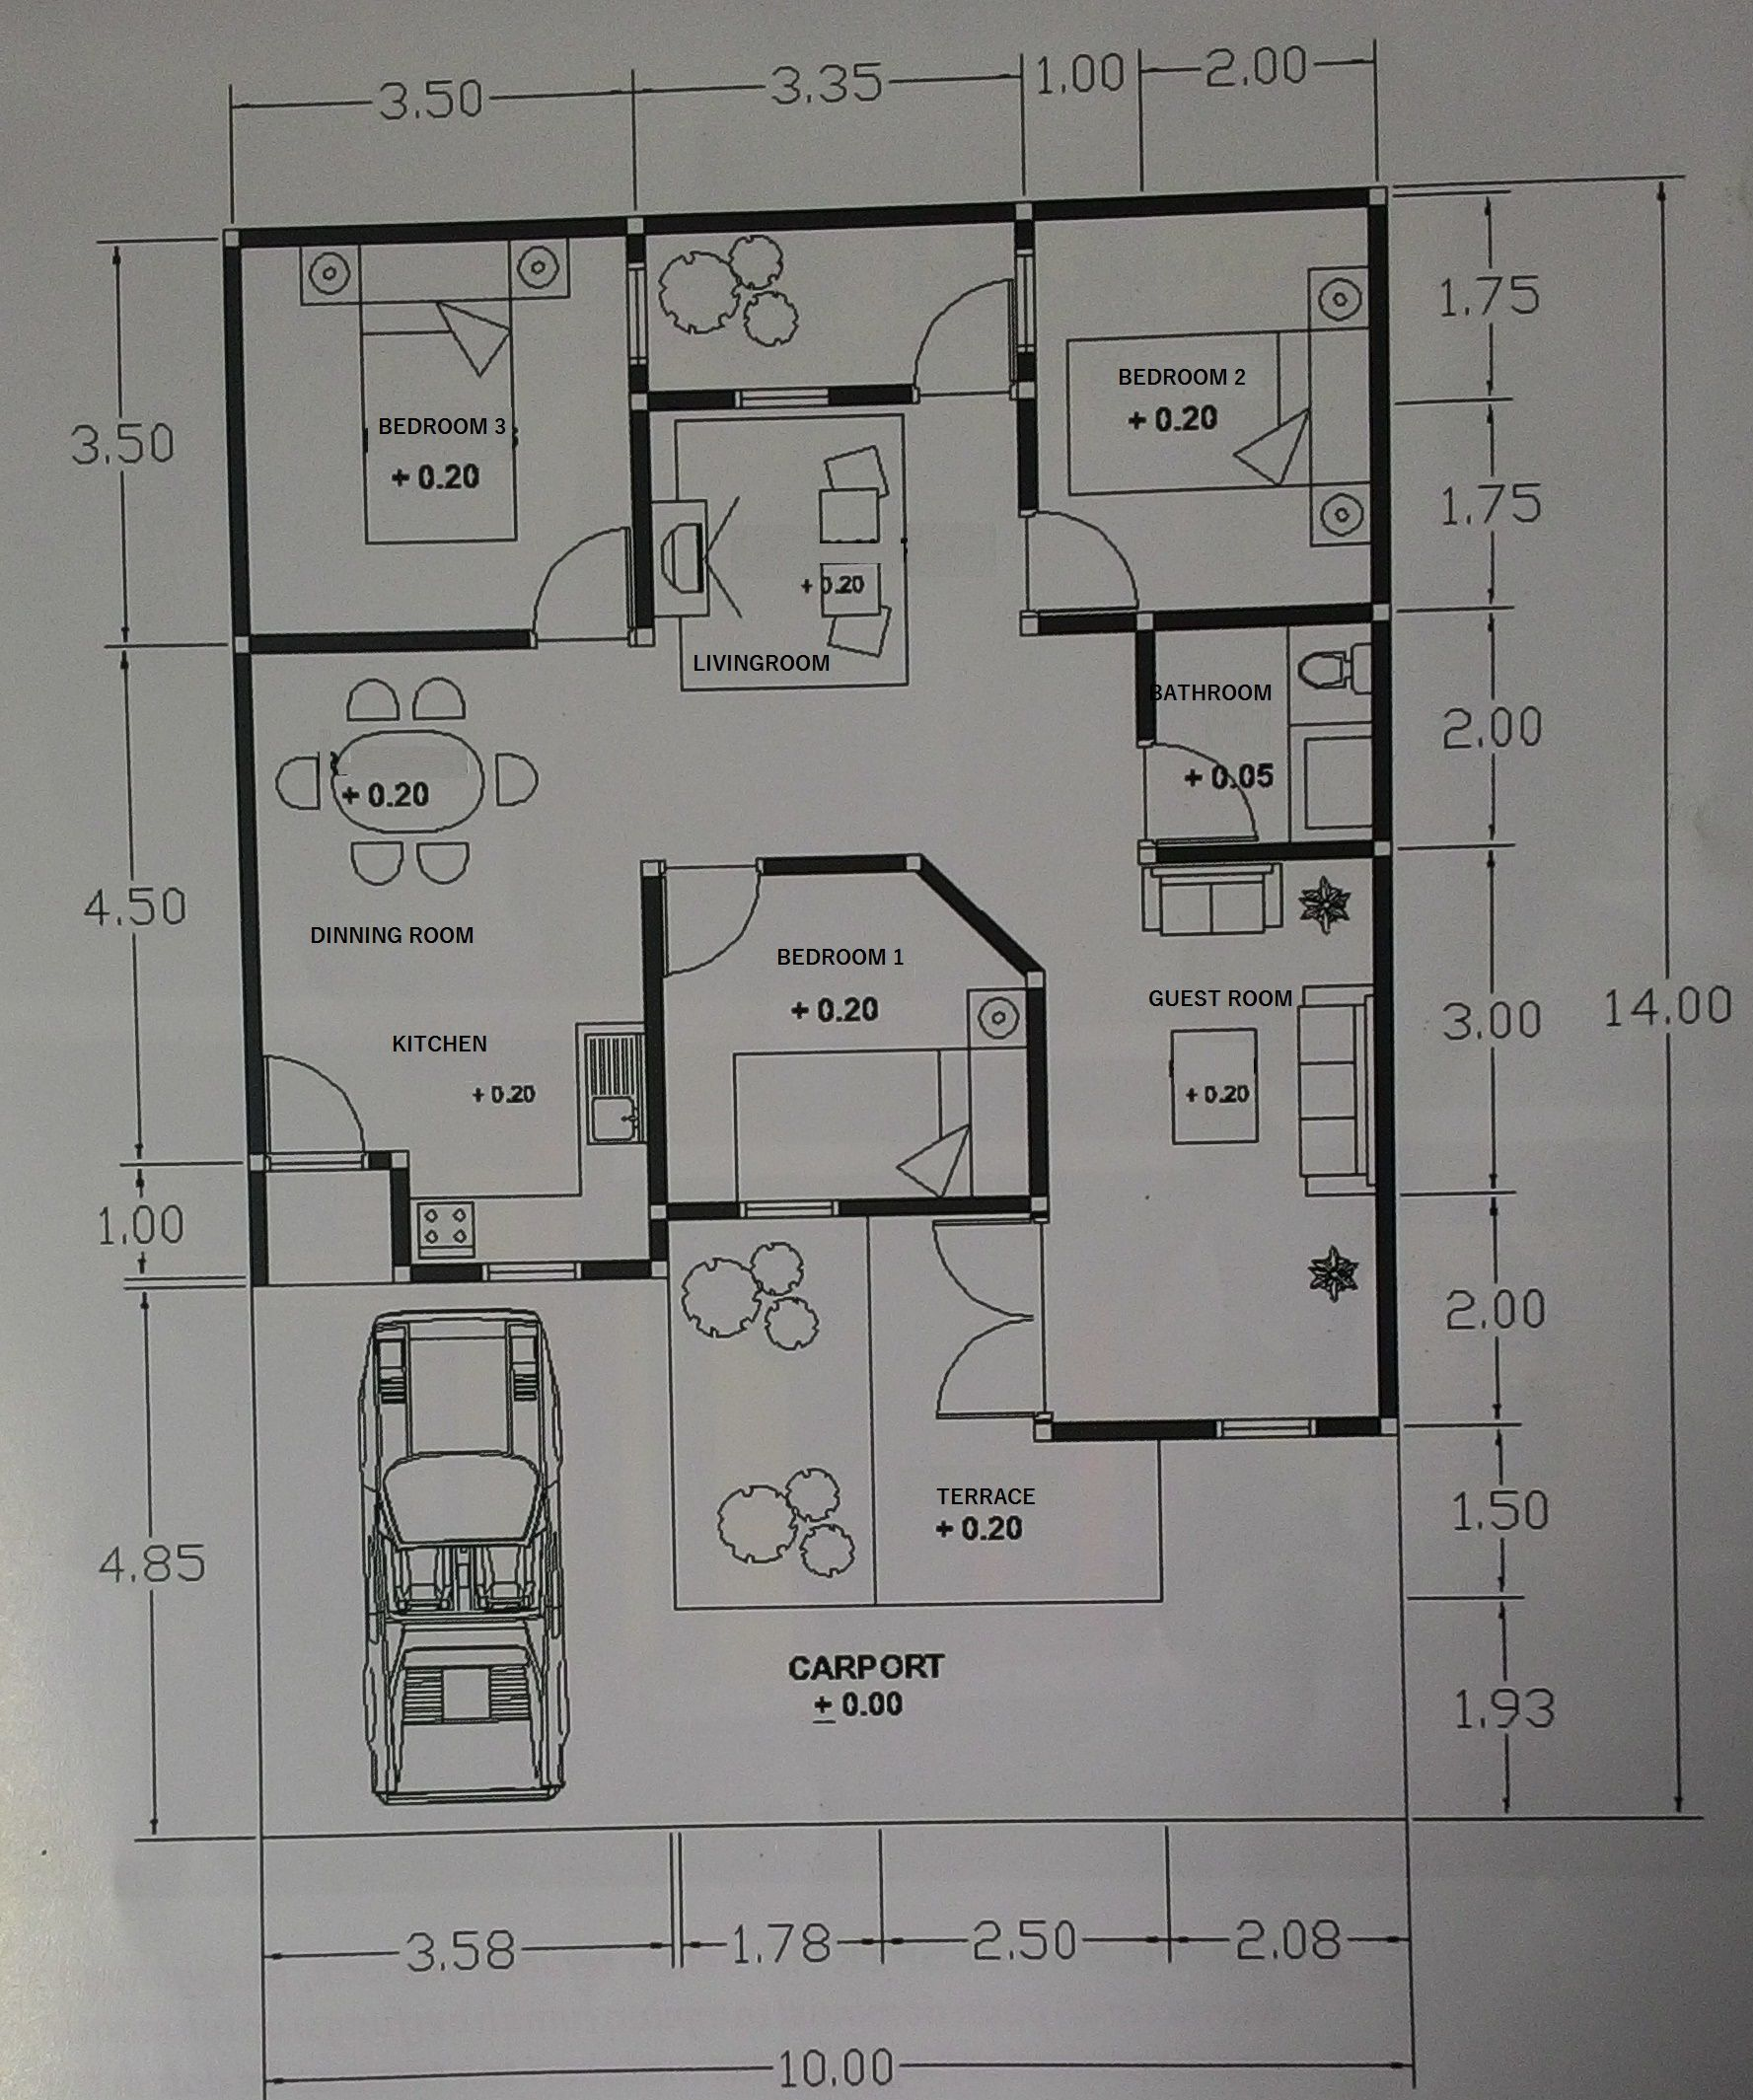 Small House Design Aesthetic And Functional Small House Design